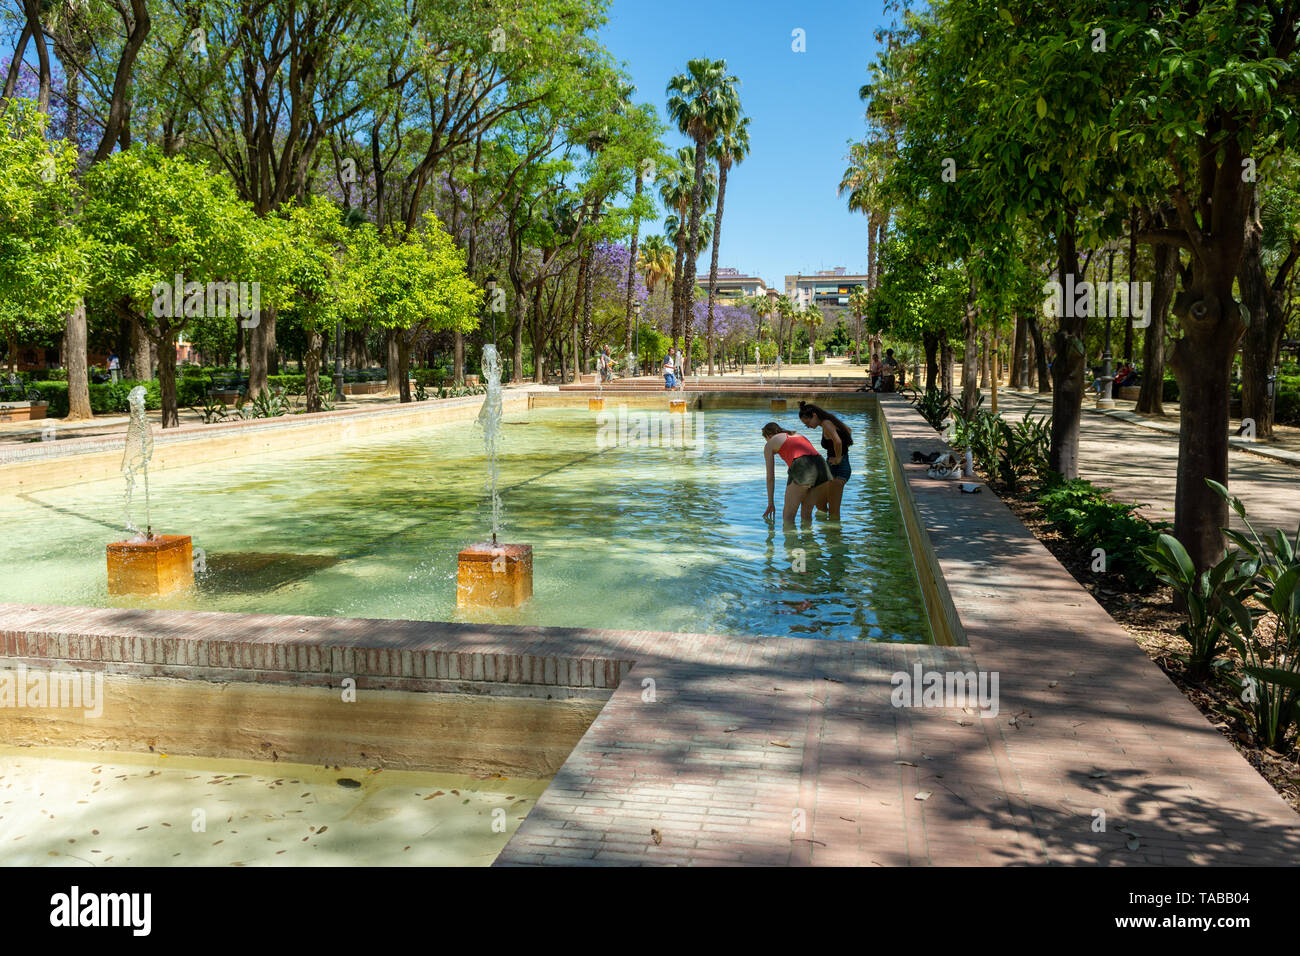 Two young women cooling down on a hot day paddling in low level fountain and water features, Prado de San Sebastian, Seville, Andalusia region, Spain - Stock Image